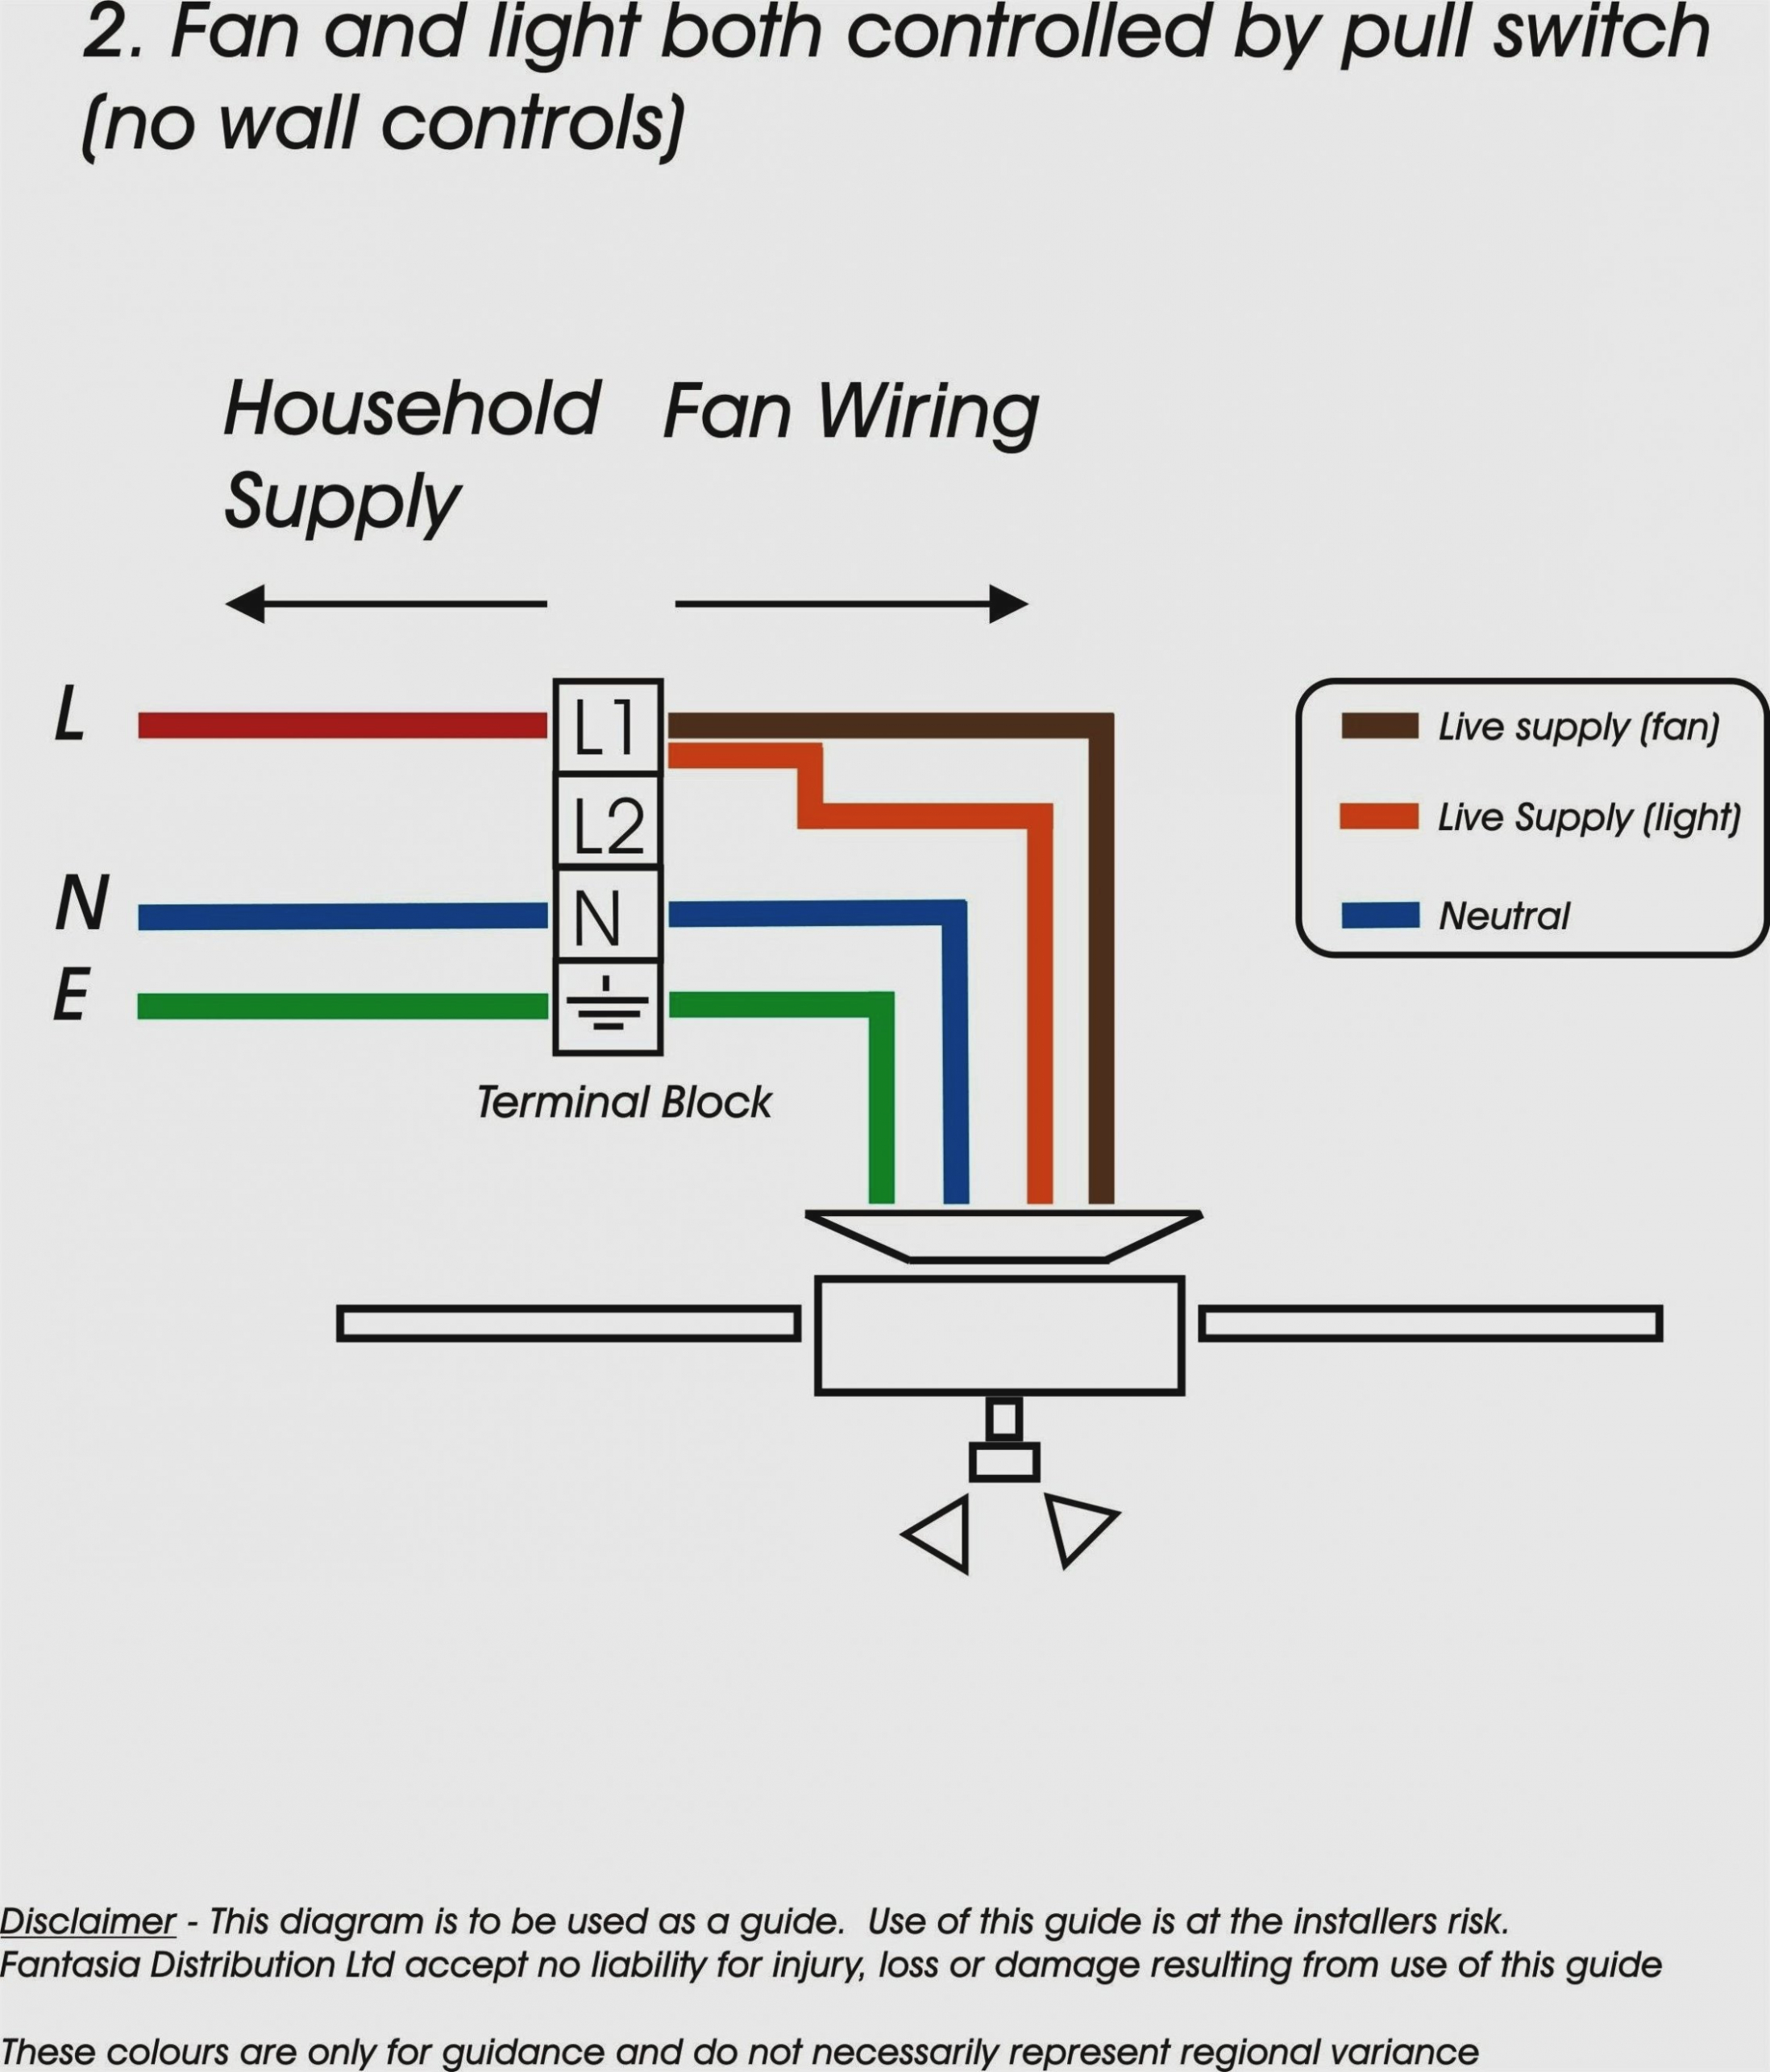 Airmaster Fan Wiring Diagram from 2020cadillac.com